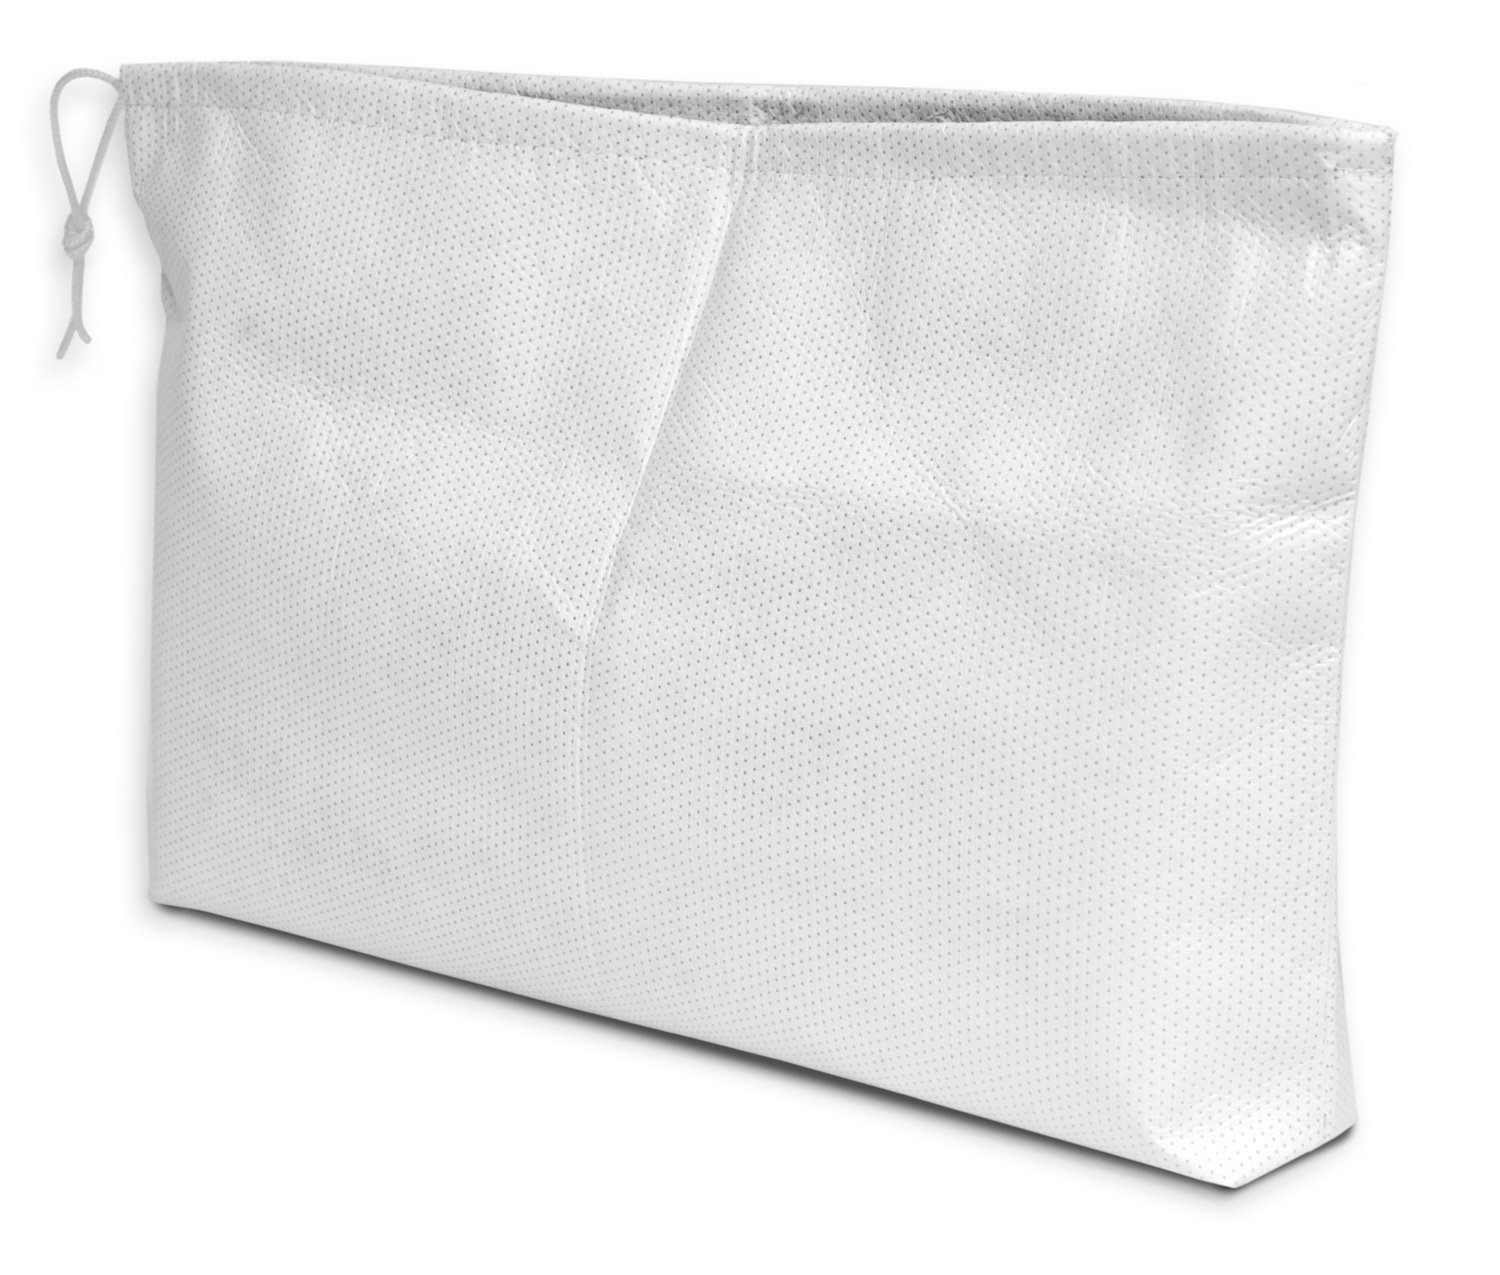 KoverRoos DuPont Tyvek 24204 5-Feet Bench/Glider Cover, 75-Inch Width by 28-Inch Diameter by 37-Inch Height, White by KOVERROOS (Image #2)